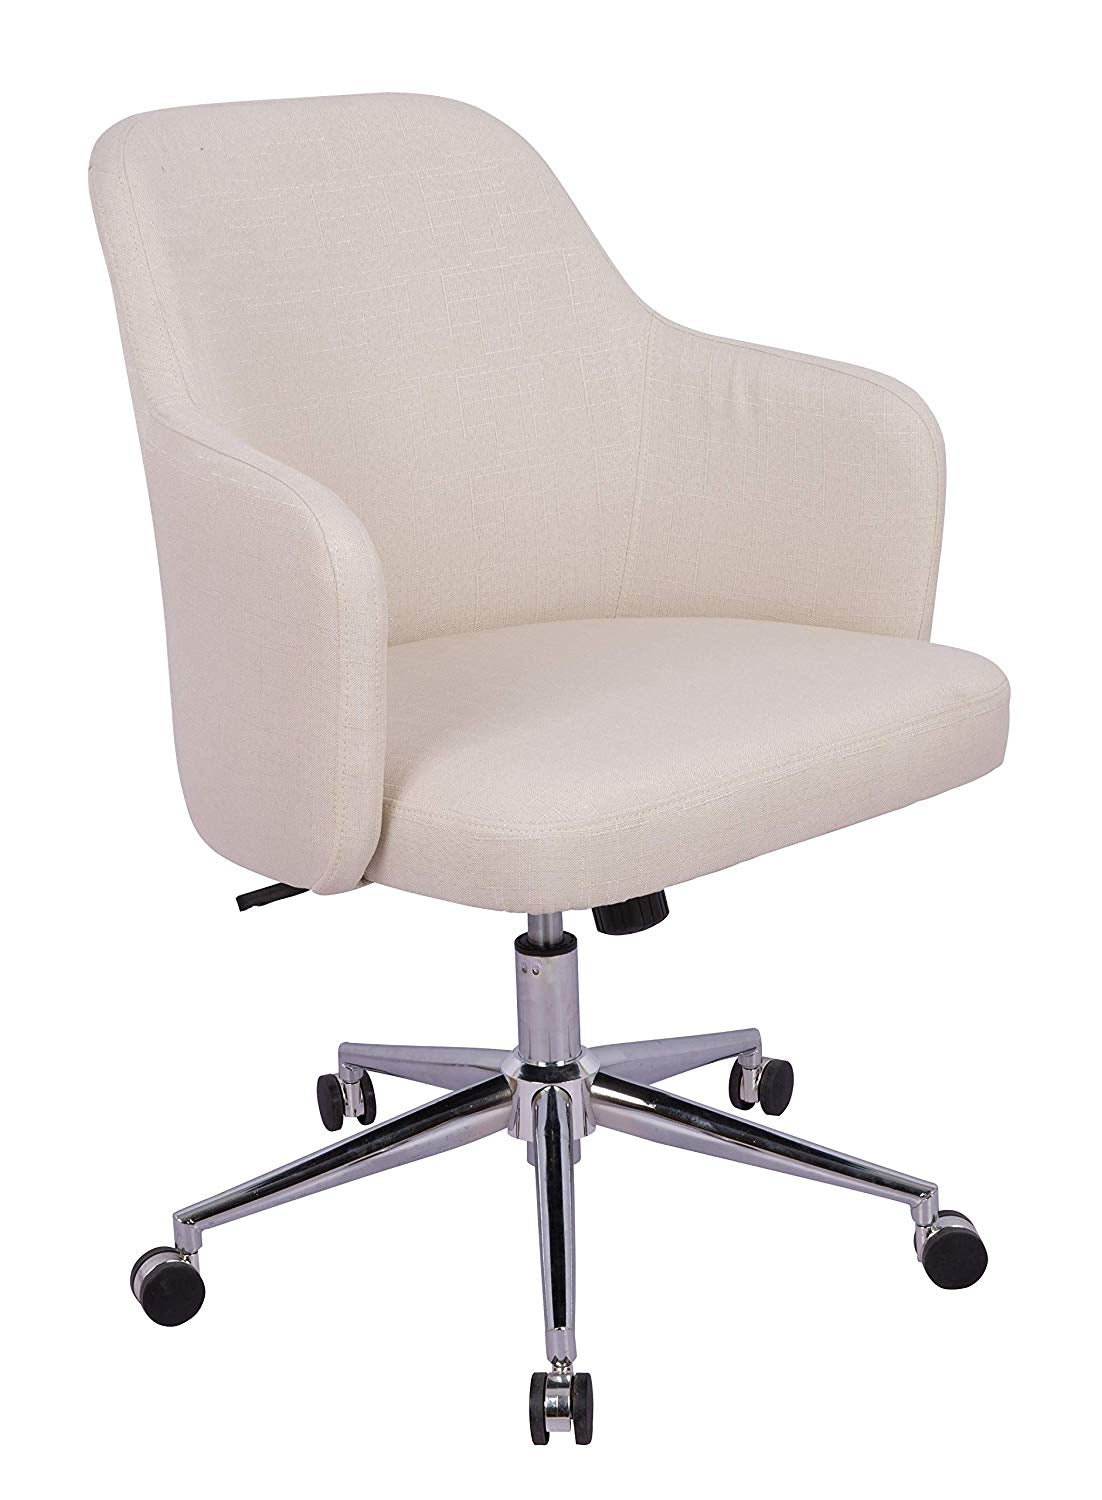 Classic Adjustable Office Chair - Twill Fabric, Navy